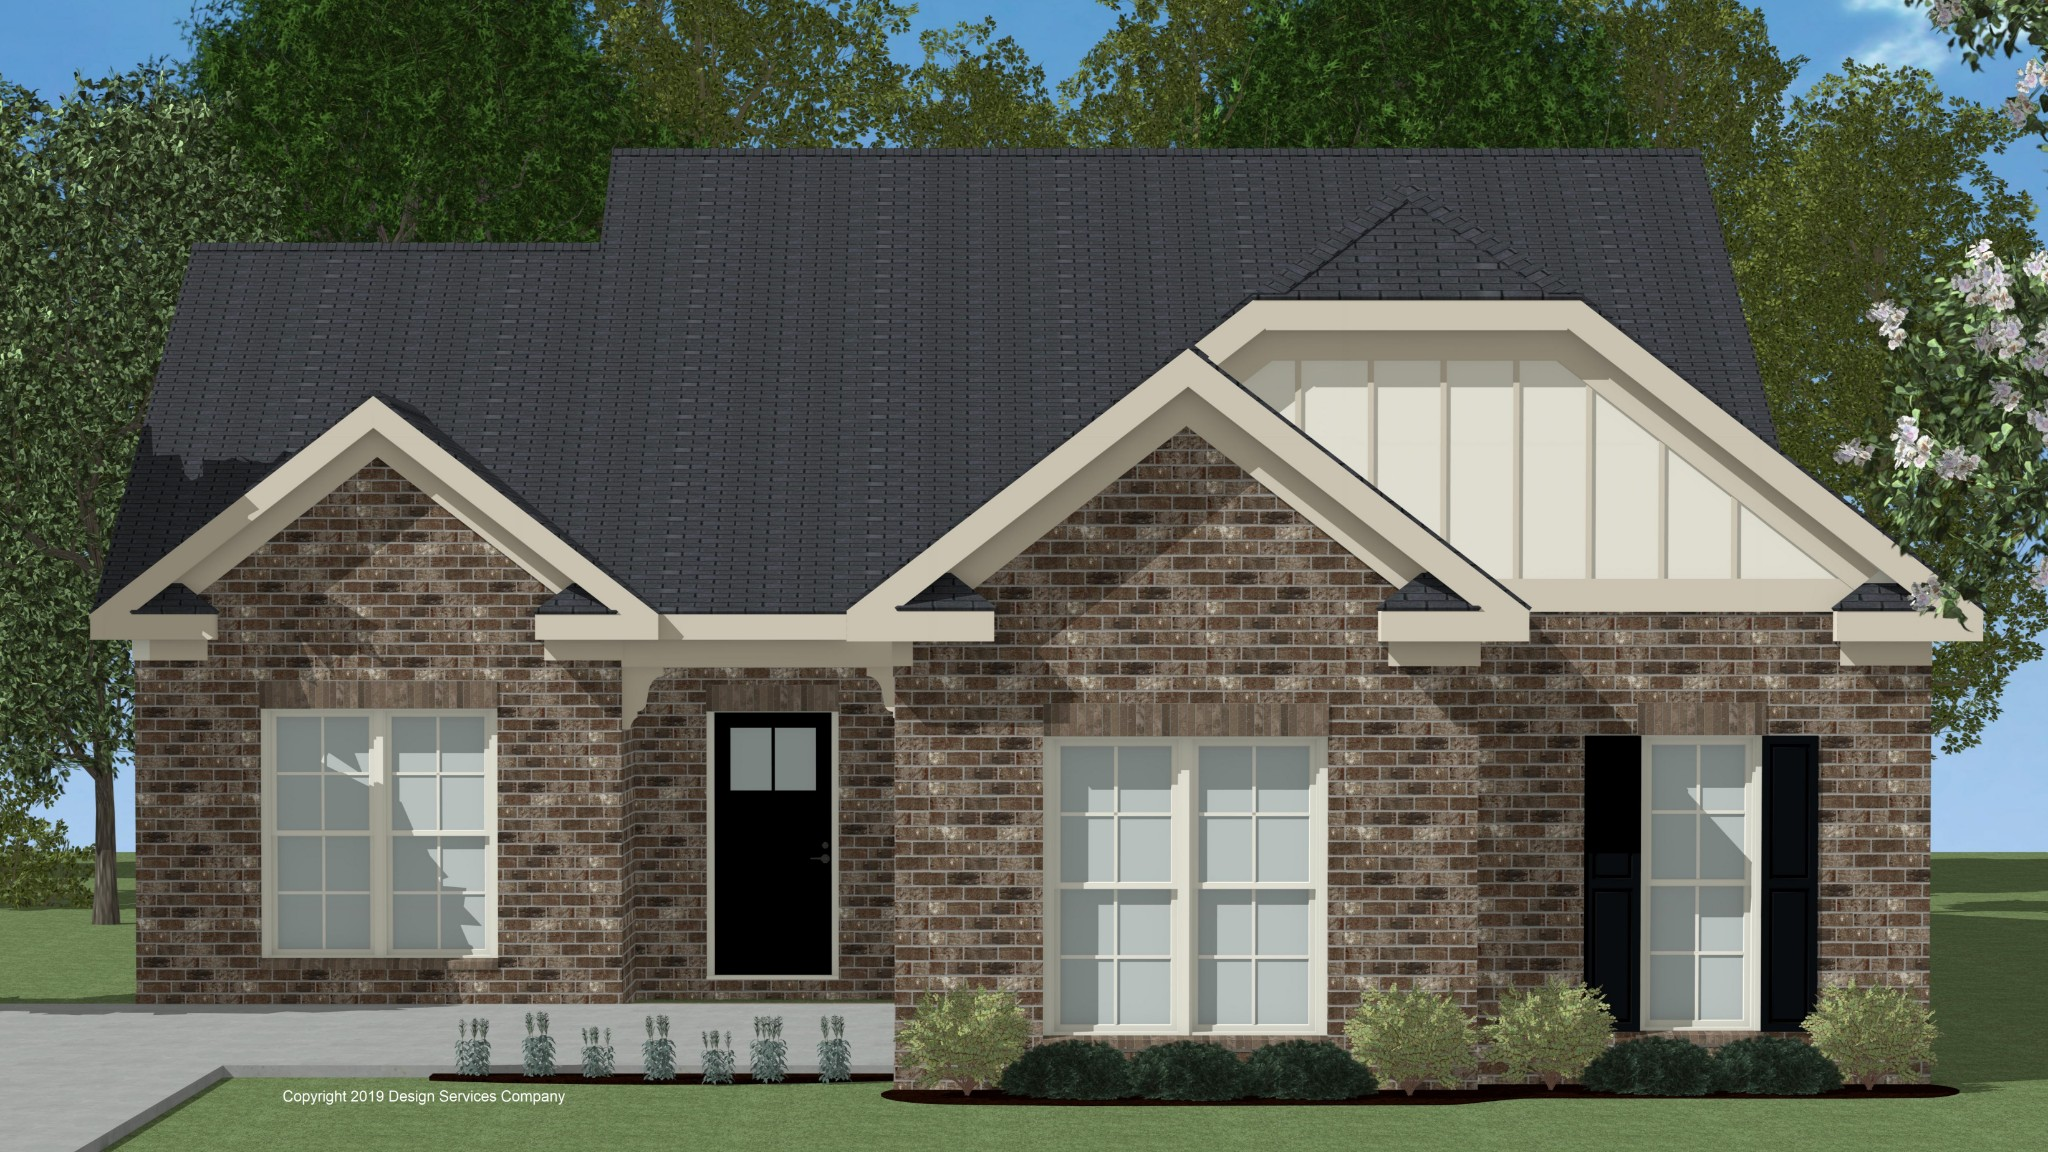 6408 Armstrong Dr Property Photo - Hermitage, TN real estate listing